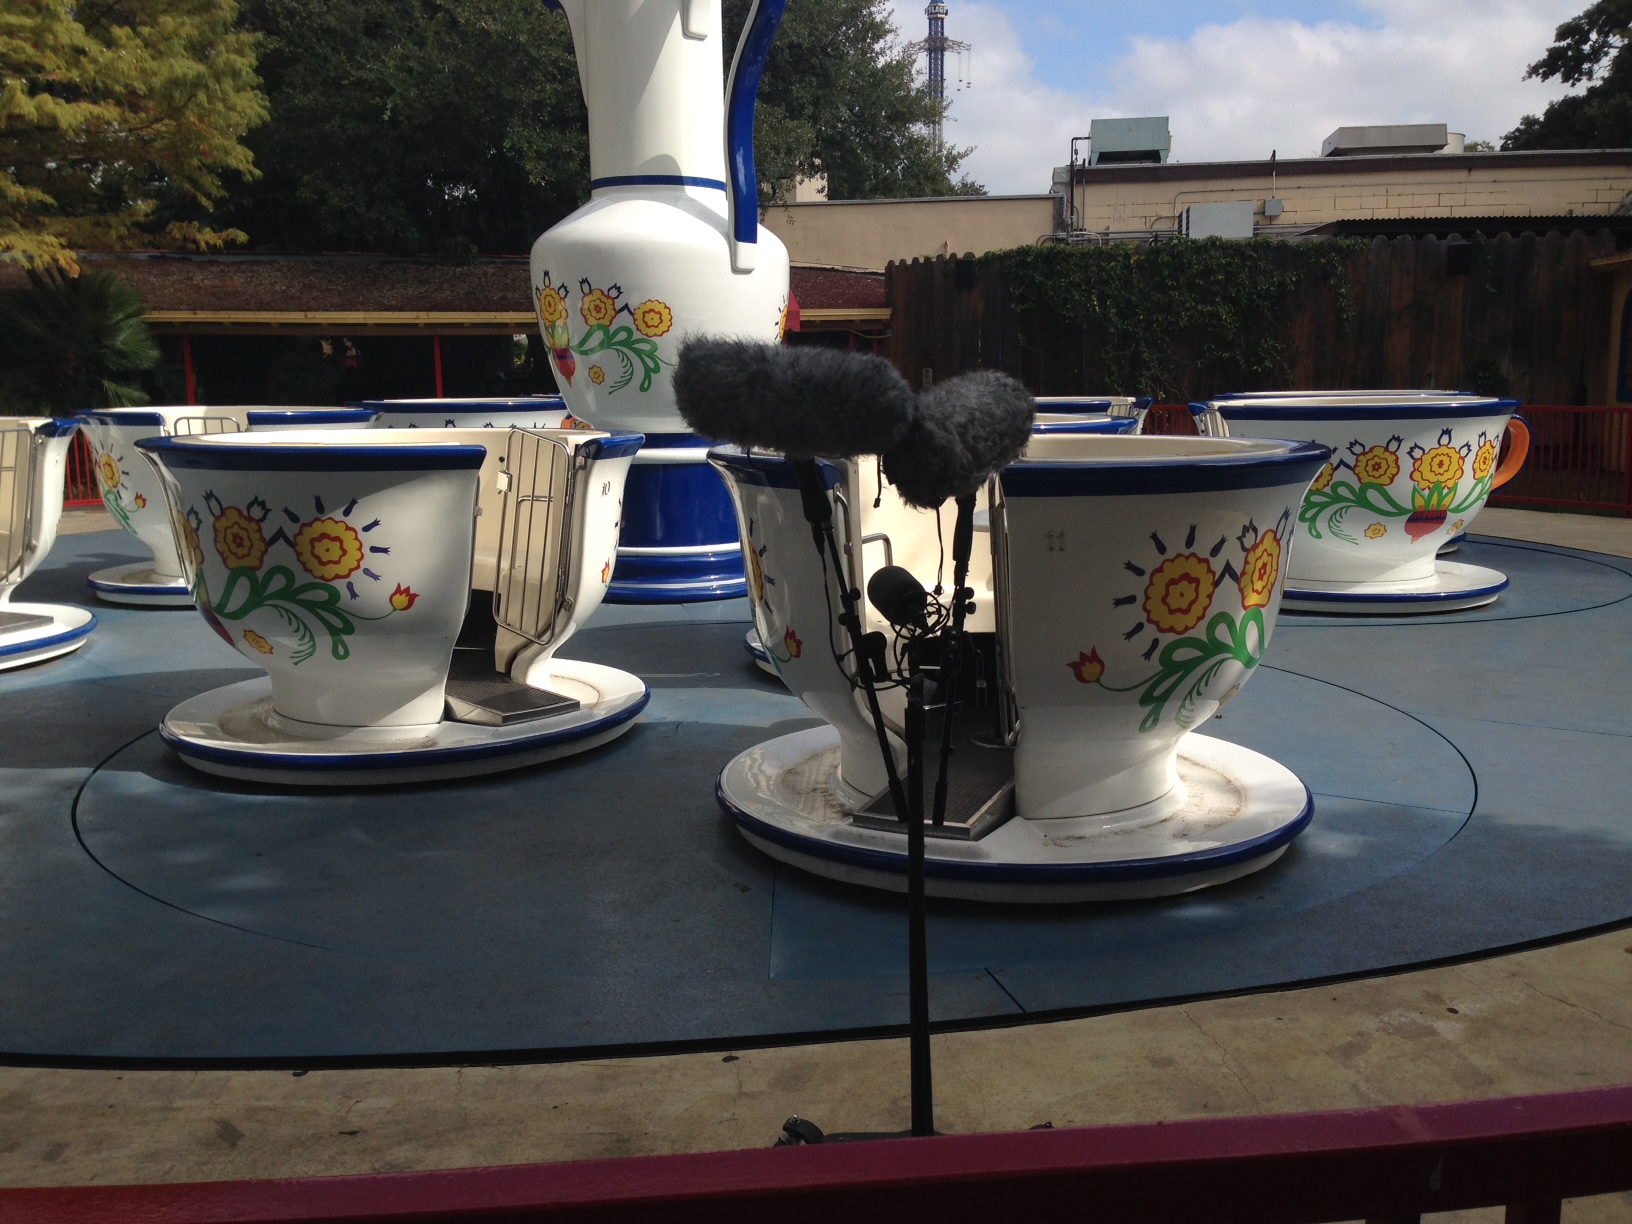 lcr on teacups